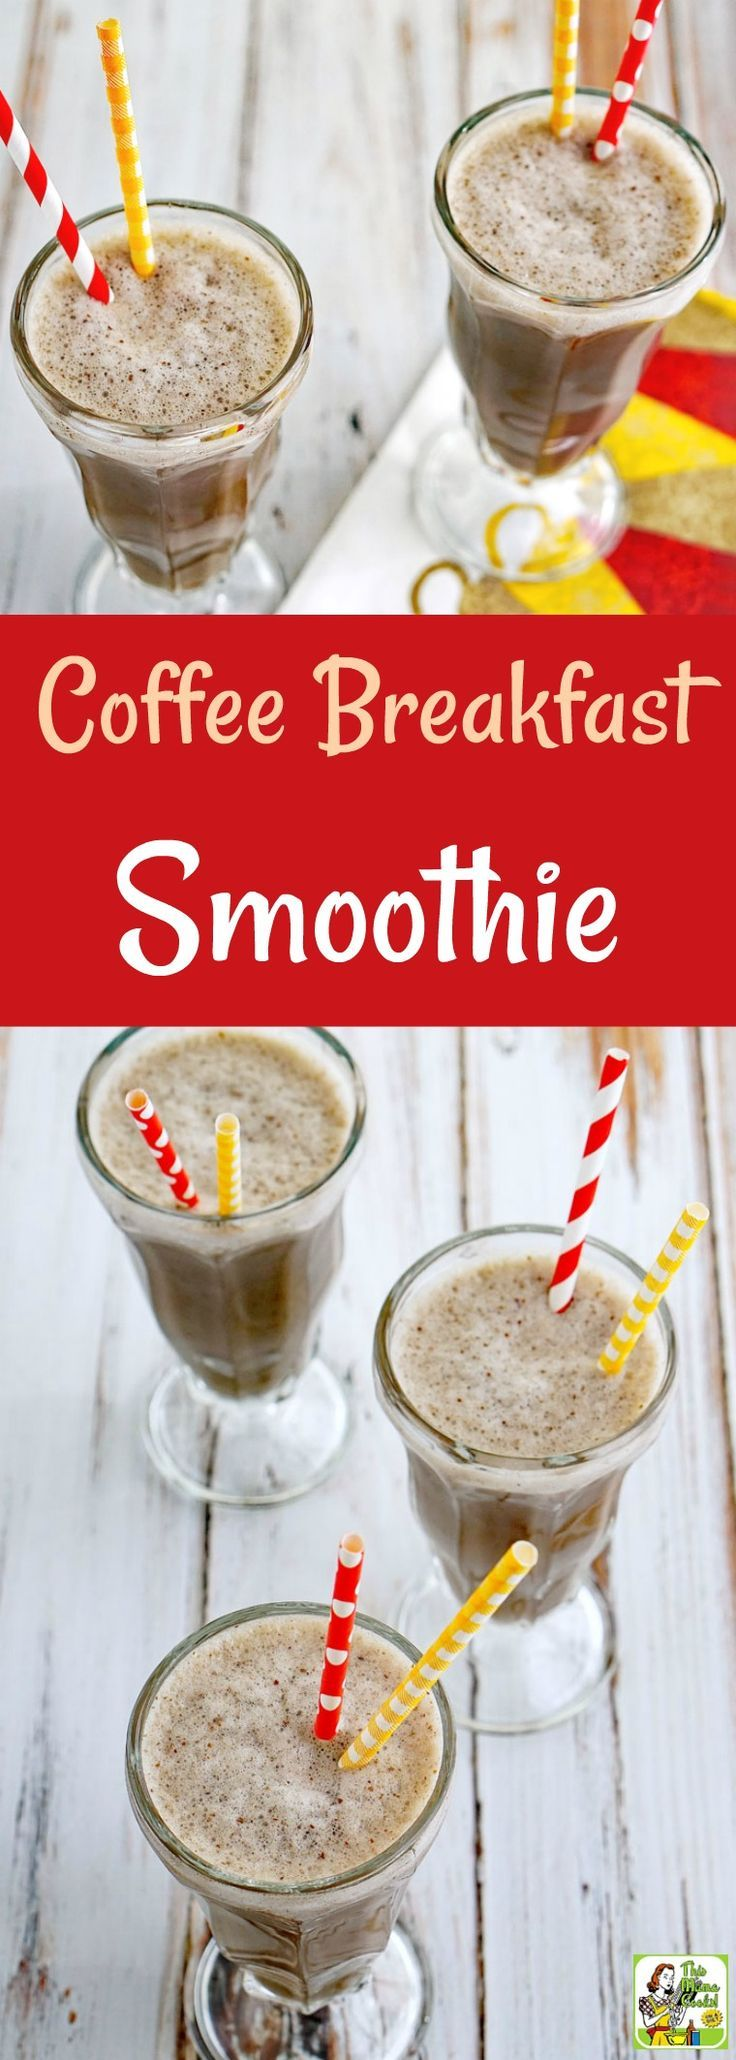 Try this Coffee Breakfast Smoothie recipe as an easy way to start your day with a boost of chocolate flavored coffee, almond milk, and cherries! This easy coffee smoothie recipe makes a healthy afternoon snack or post-workout drink. This coffee shake recipe is dairy free. #coffee #shake #drink #smoothie #dairyfree #almondmilk #cherries #healthydrink #lowcalorie #breakfast #icedcoffee #coffeesmoothie #ad Discover #PerfectPickMeUp recipes at the Publix Morning Moments site #ad…